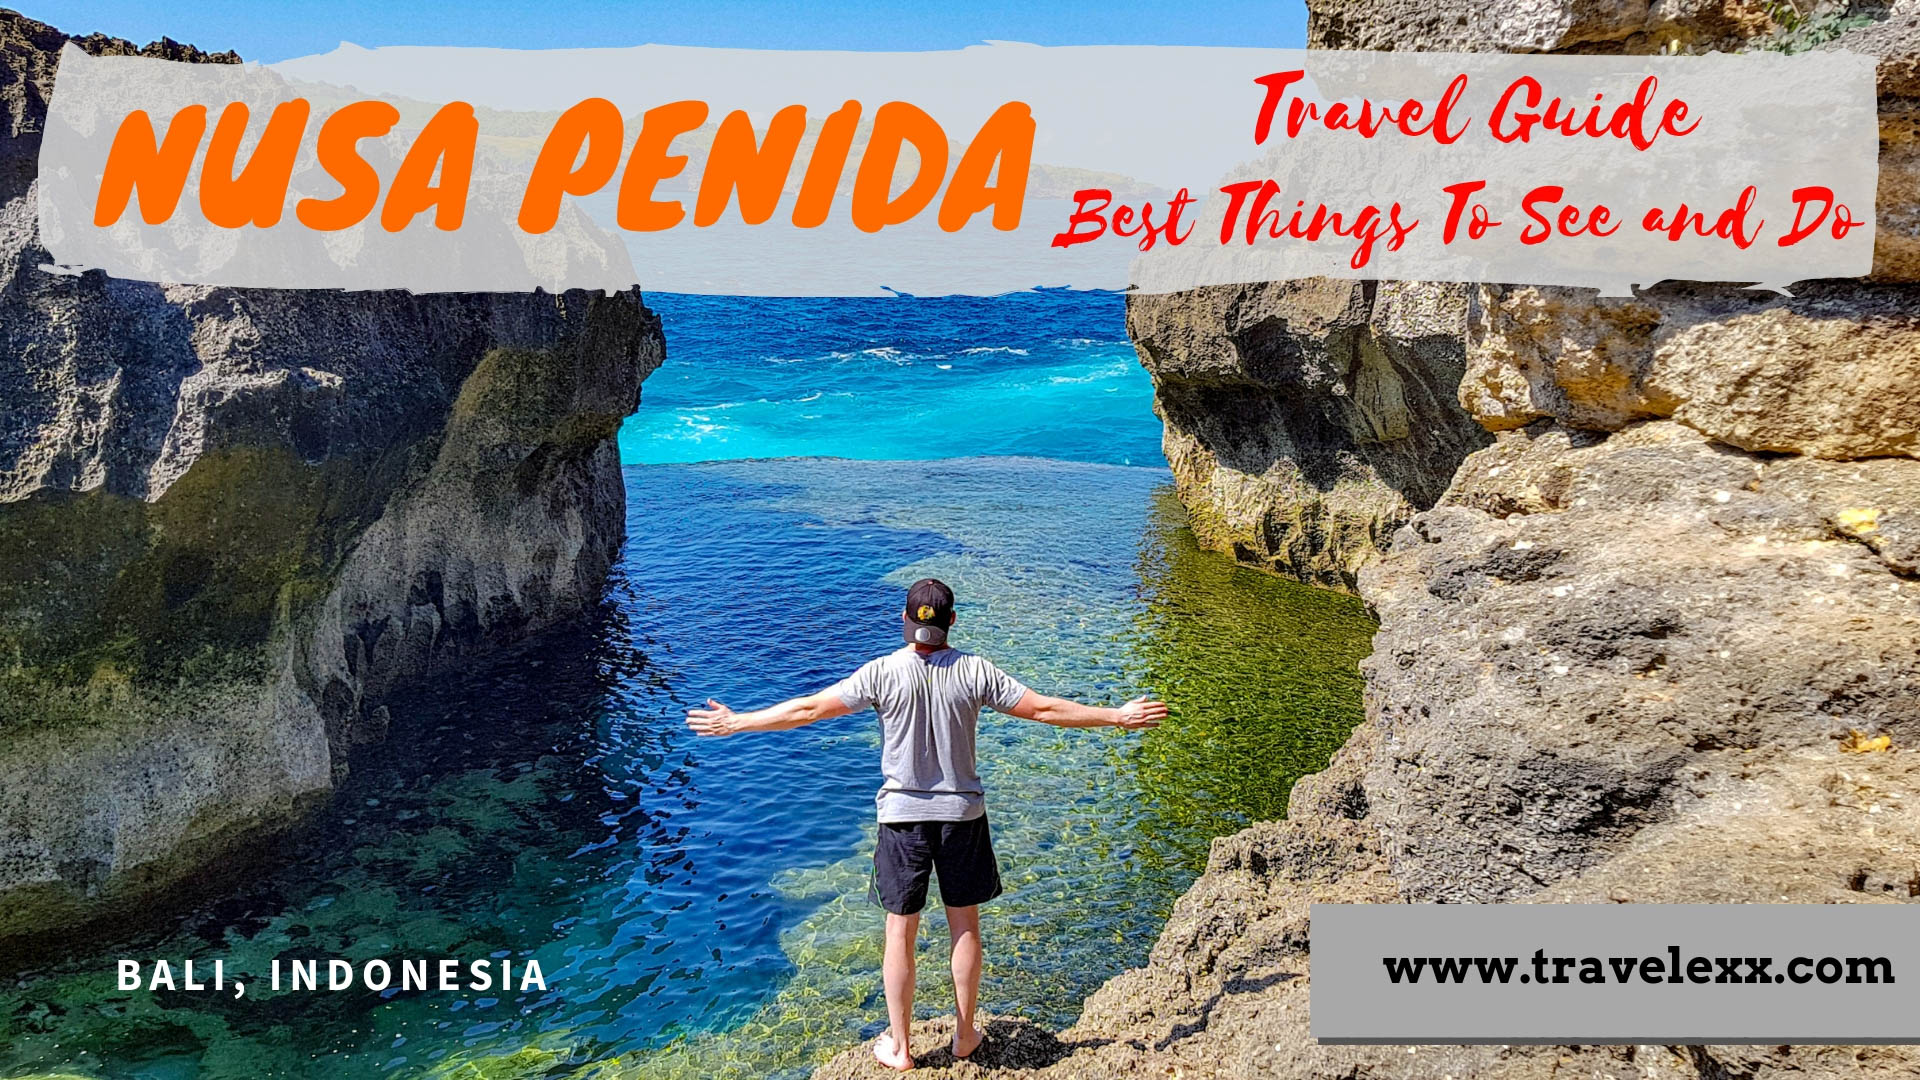 Nusa Penida Travel Guide Best Things To See And Do Lexx Paket Trip Bali Nusapenidafeatured